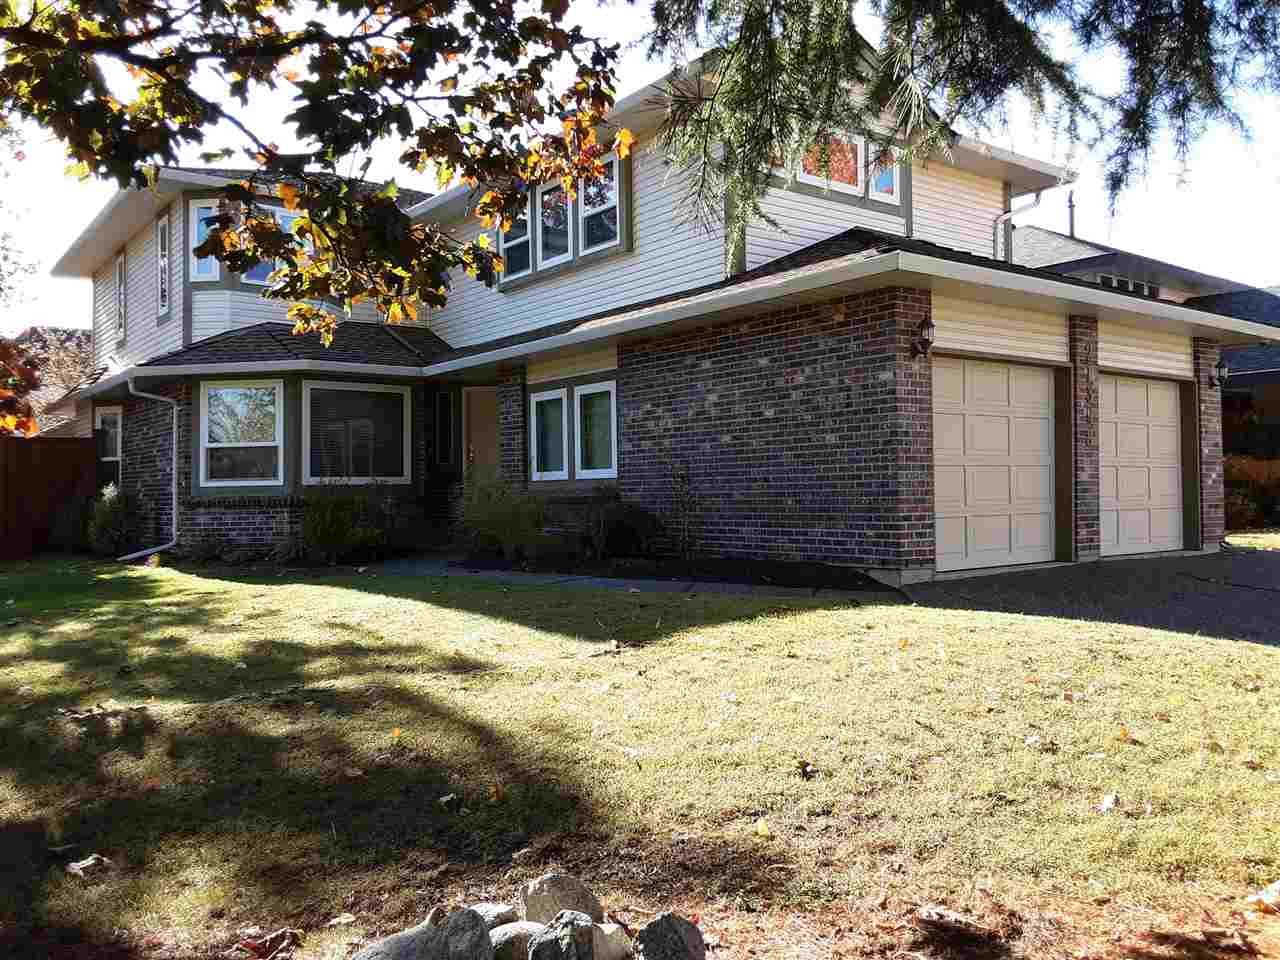 """Main Photo: 21398 86A Crescent in Langley: Walnut Grove House for sale in """"FOREST HILLS"""" : MLS®# R2514189"""